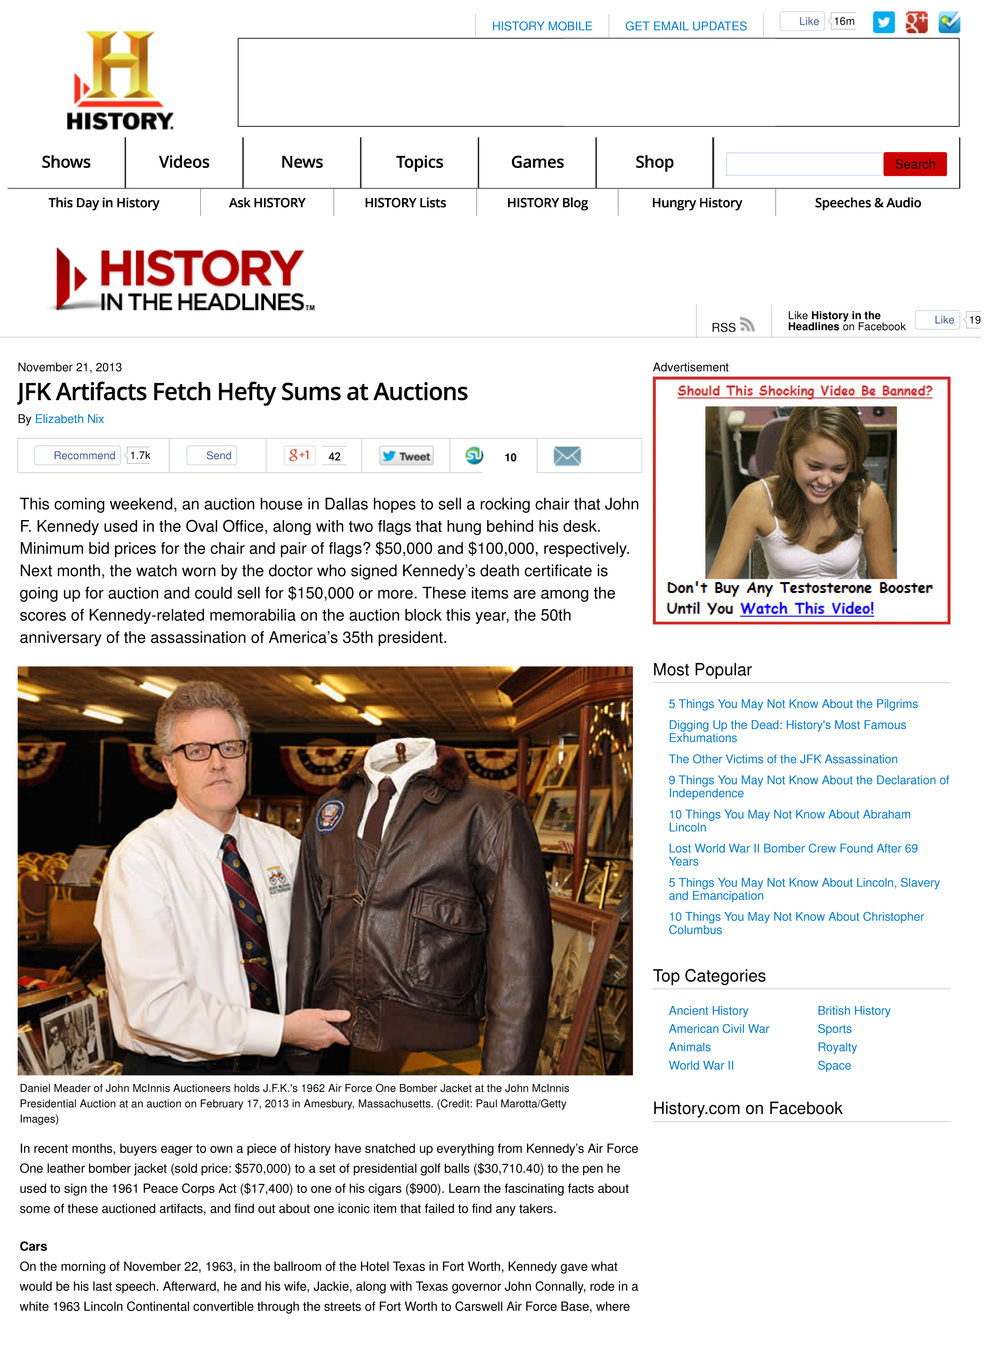 JFK Artifacts Fetch Hefty Sums at Auctions — History in the Headlines-1.jpg